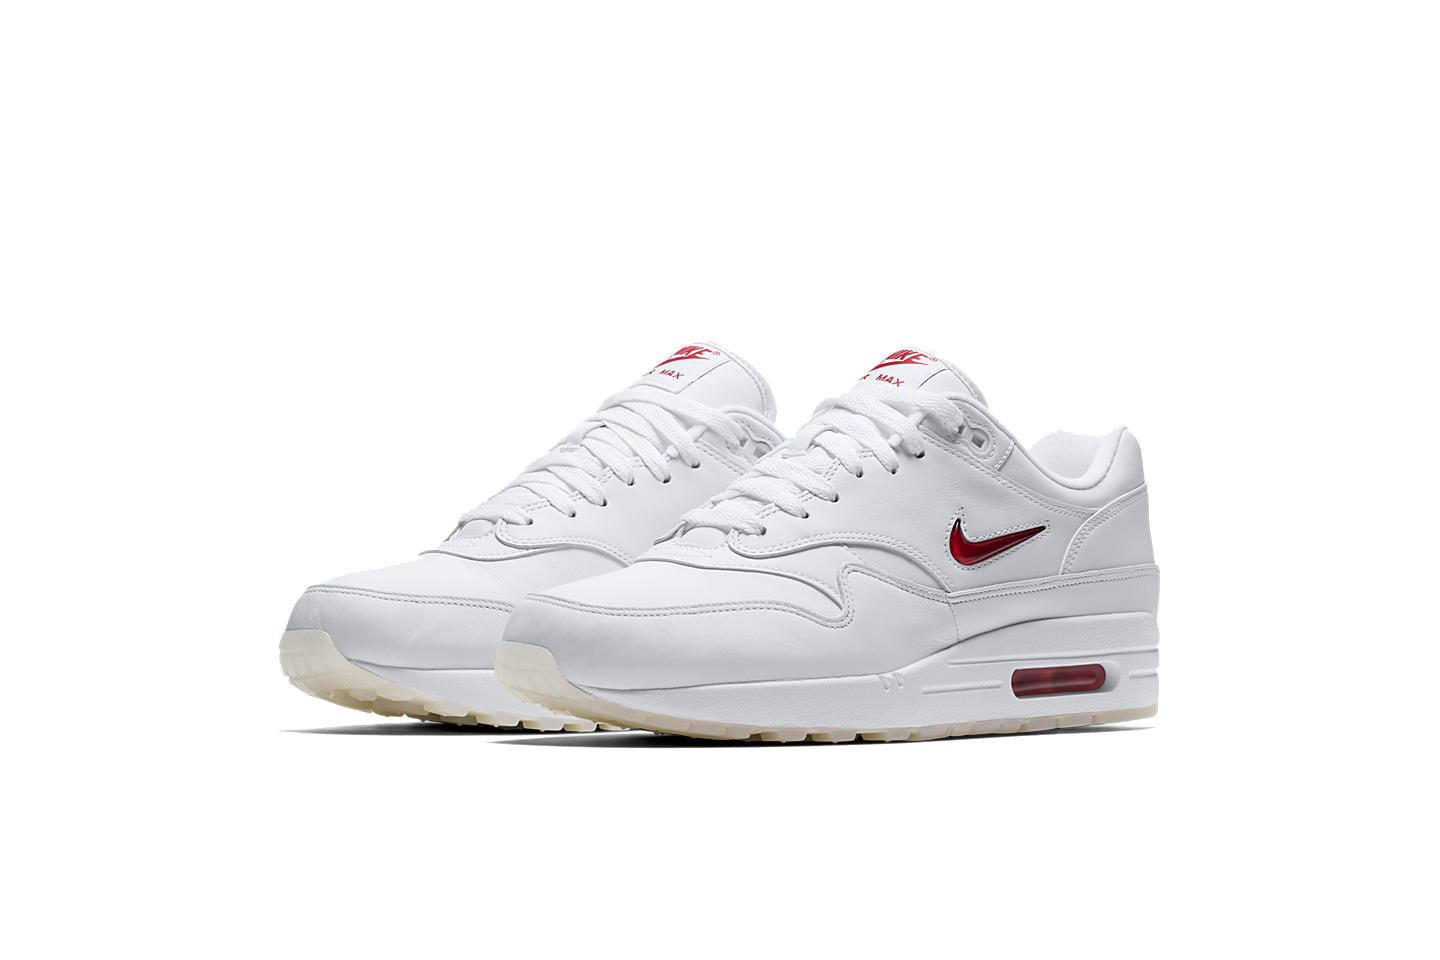 Nike Air Max 1 Jewel Returning in Two